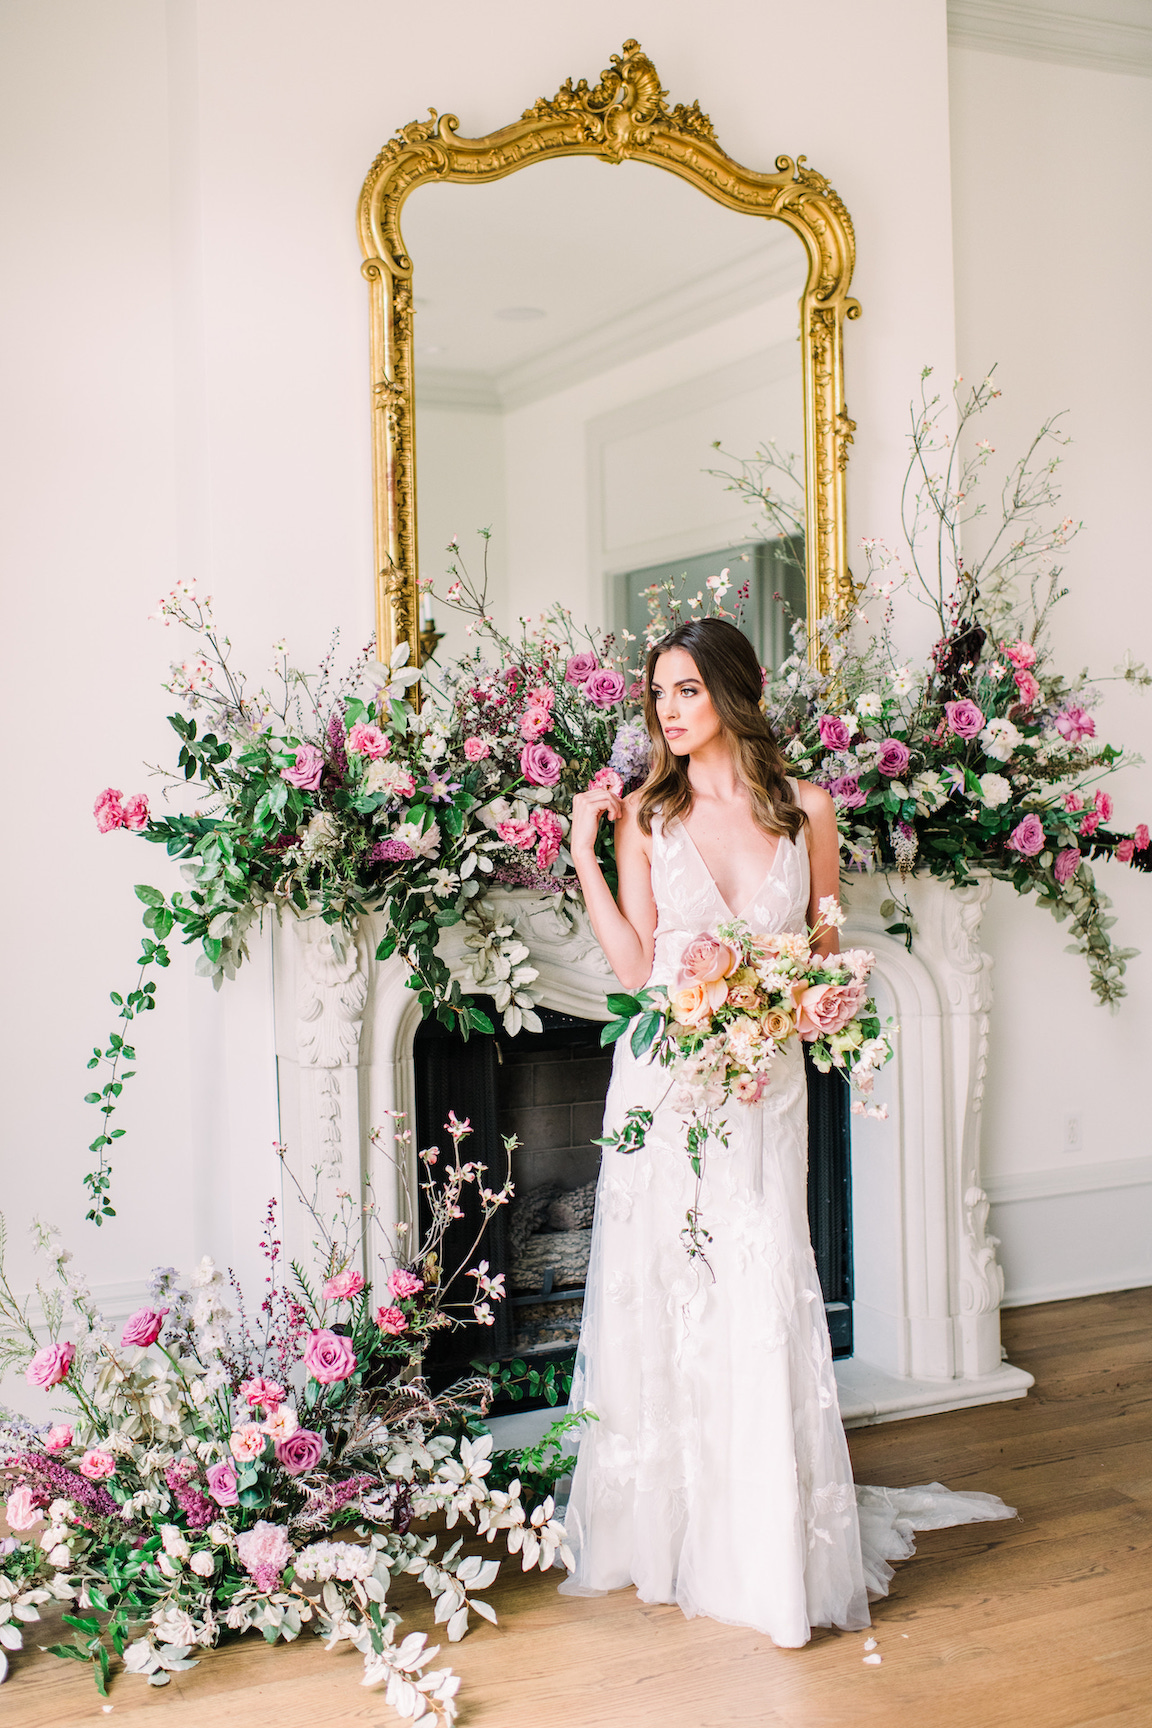 Sojourn-Weddings-Floral-Designer-Bridal-Portrait-Ideas-30.jpg